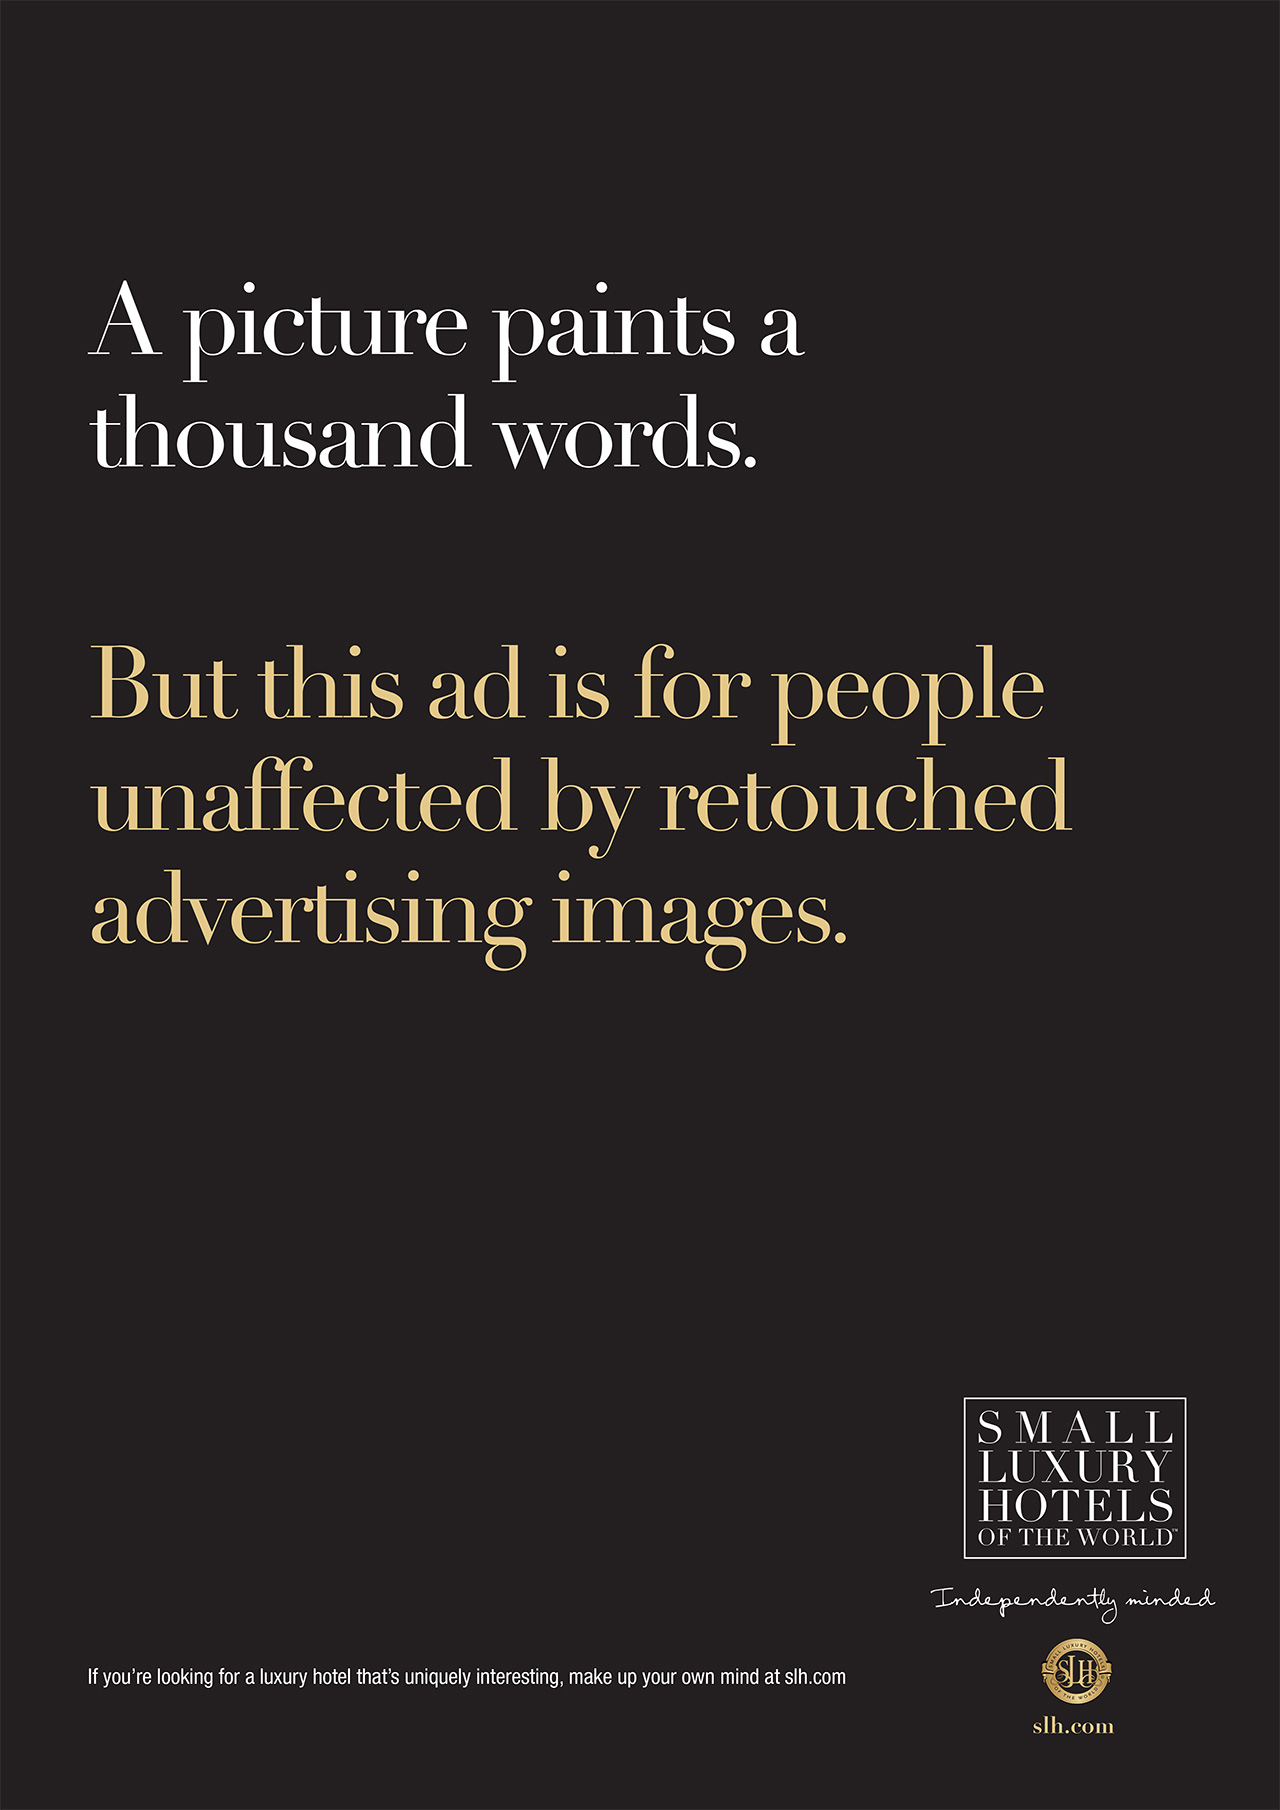 Unadvertise The New Advertising By The Small Luxury Hotels Of The